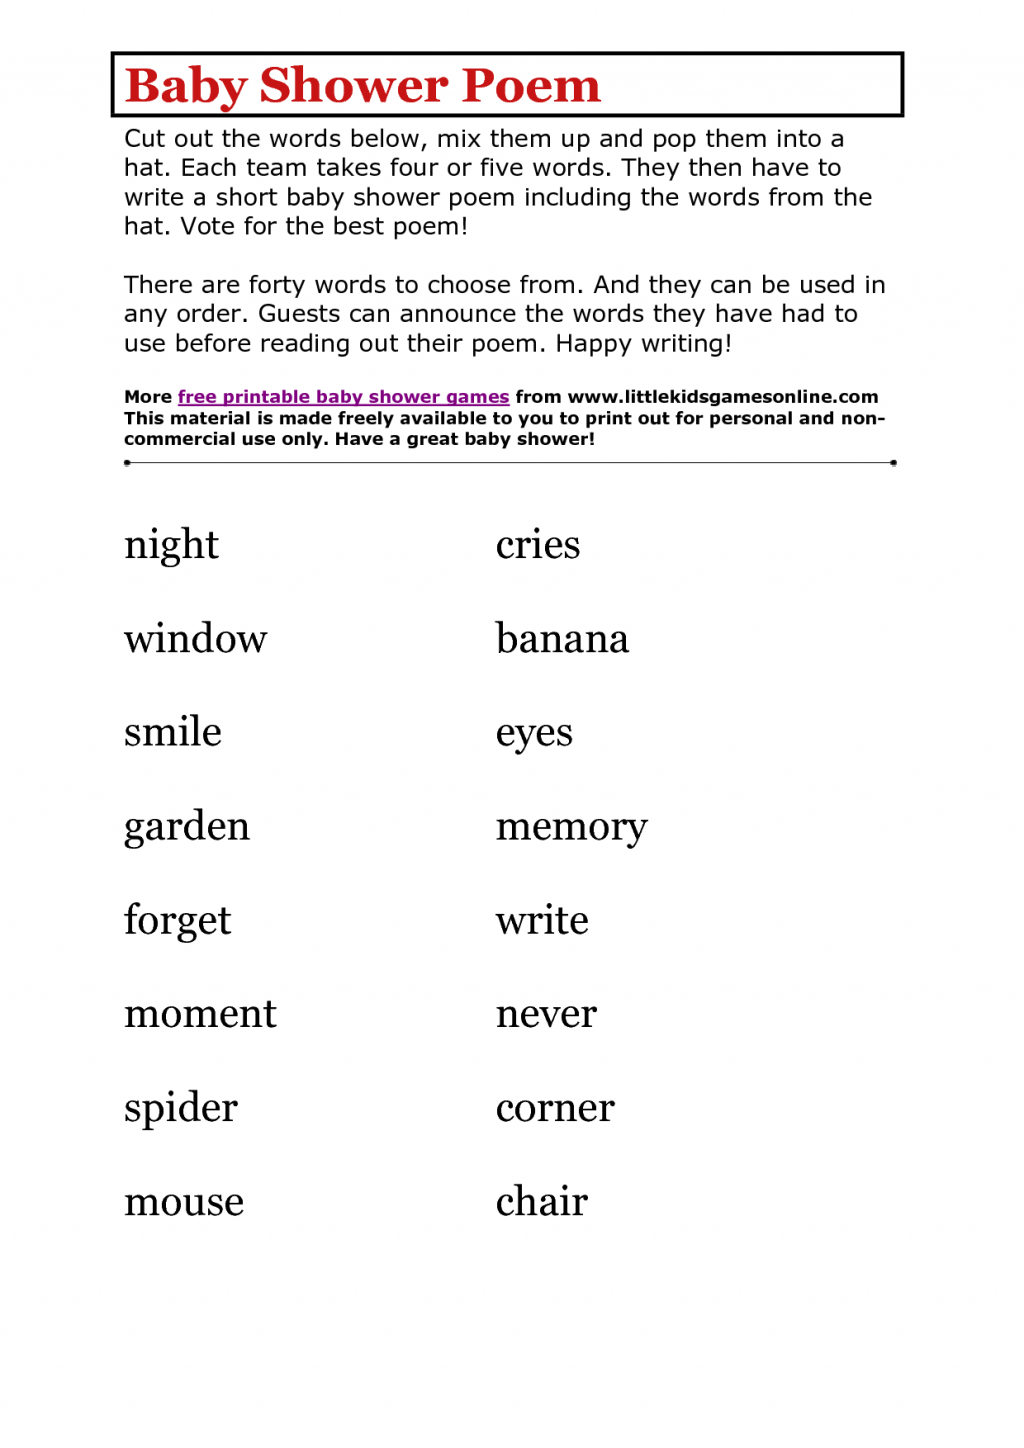 Photo : Baby Shower Poem Printable Image - Free Baby Shower Games Printable Worksheets